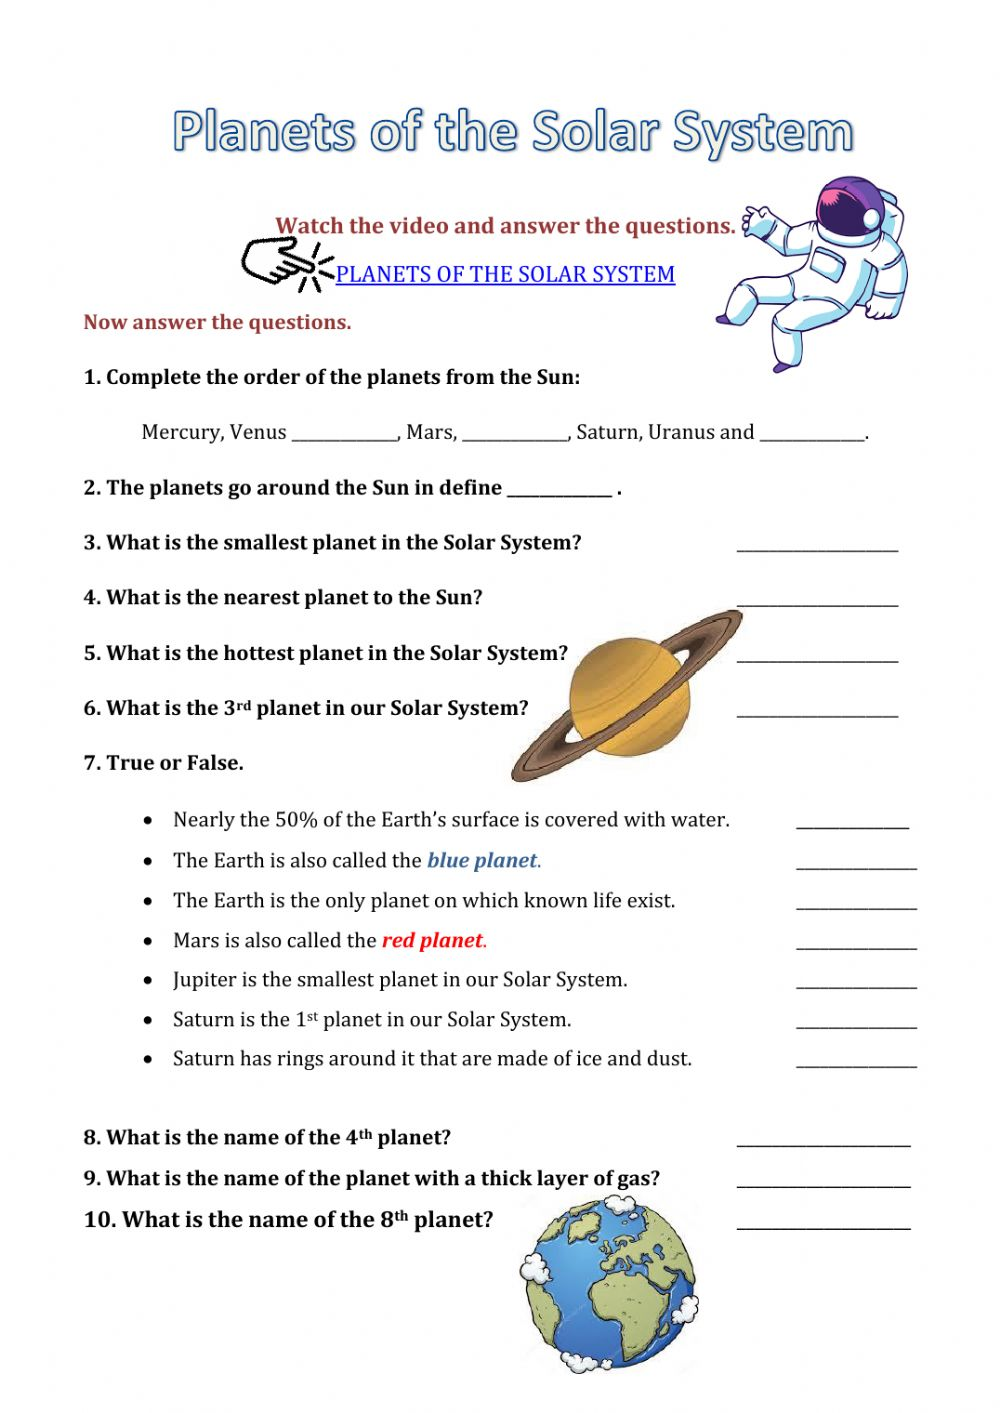 Planets of the solar system worksheet